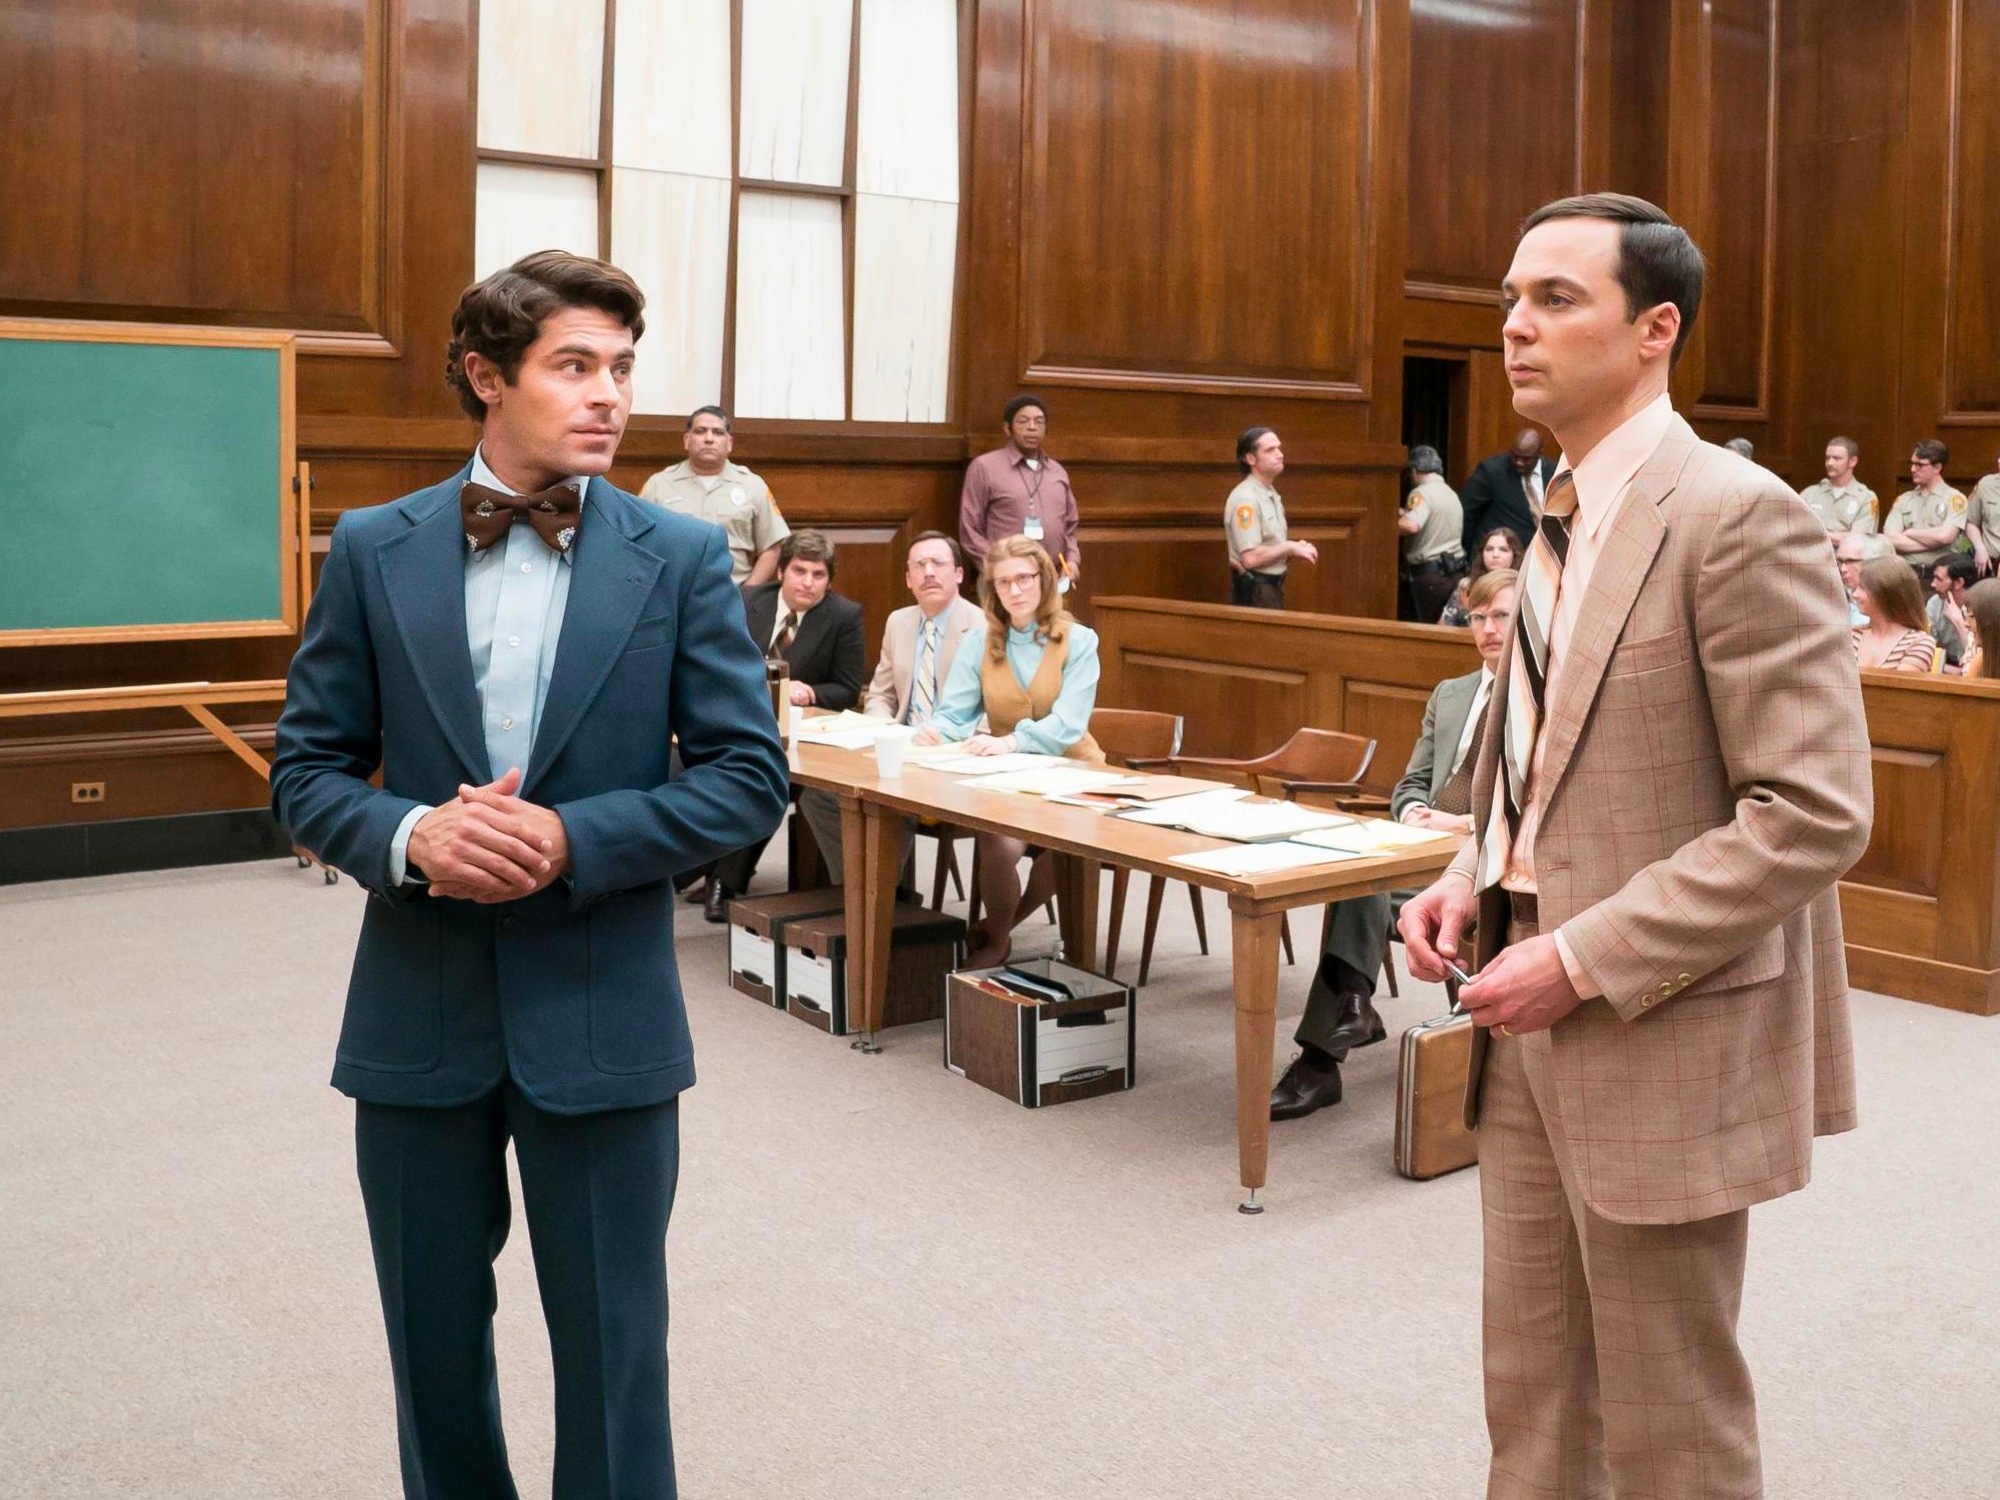 From left to right: Zac Efron as the infamous serial killer Ted Bundy and Jim Parsons as Floridian prosecution lawyer Larry Simpson in  Extremely Wicked, Shockingly Evil, and Vile .